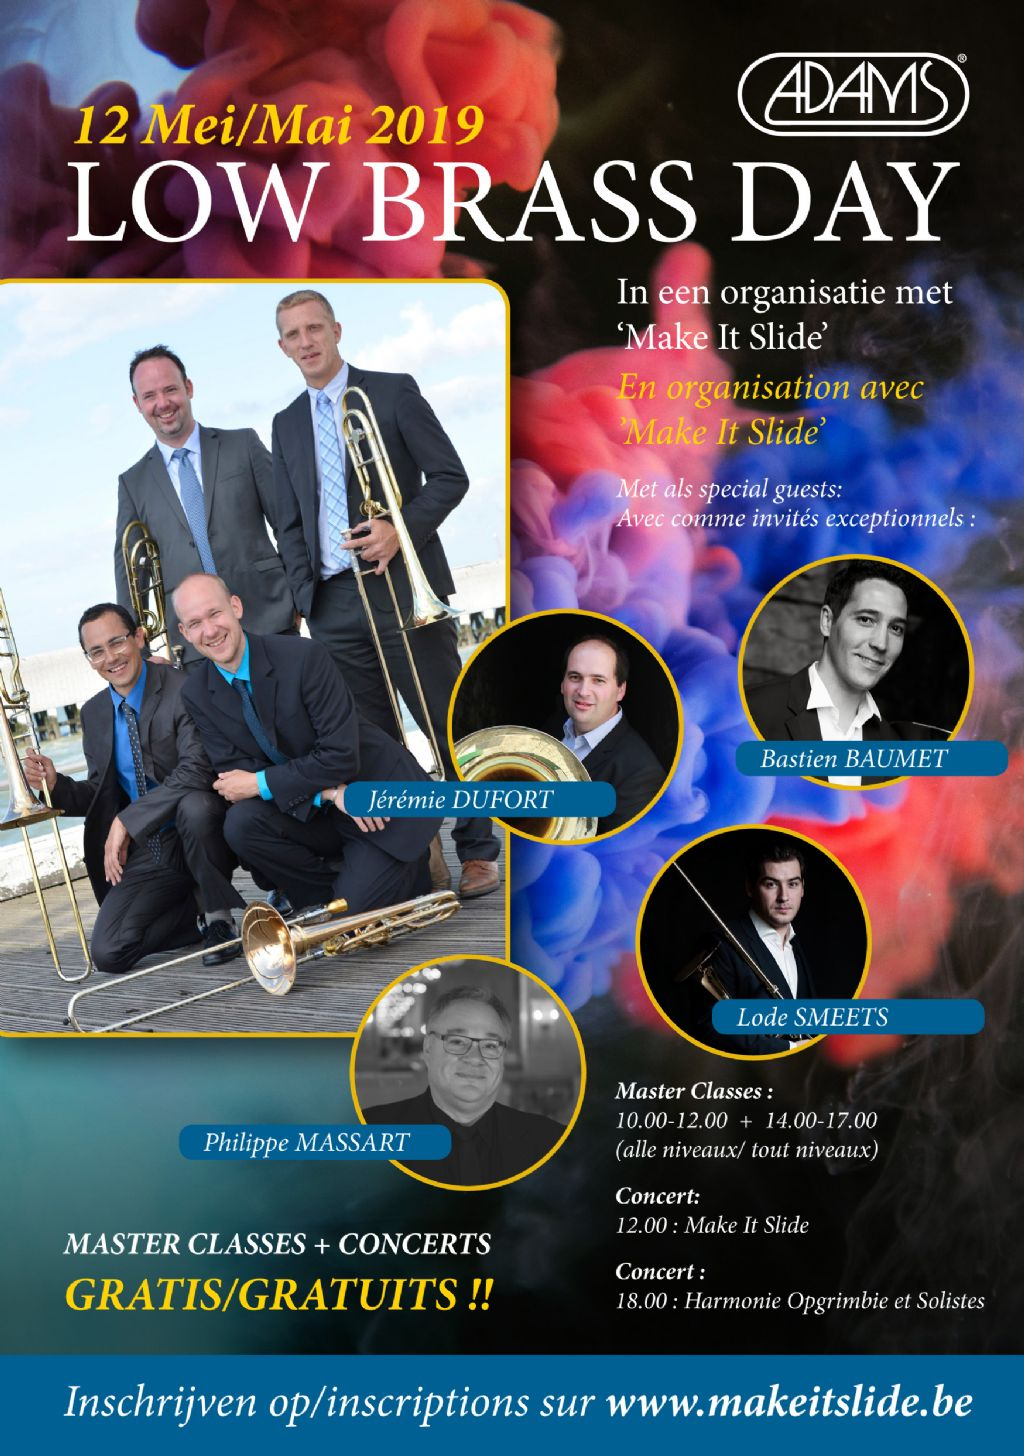 Low Brass Day bij Adams Lummen!